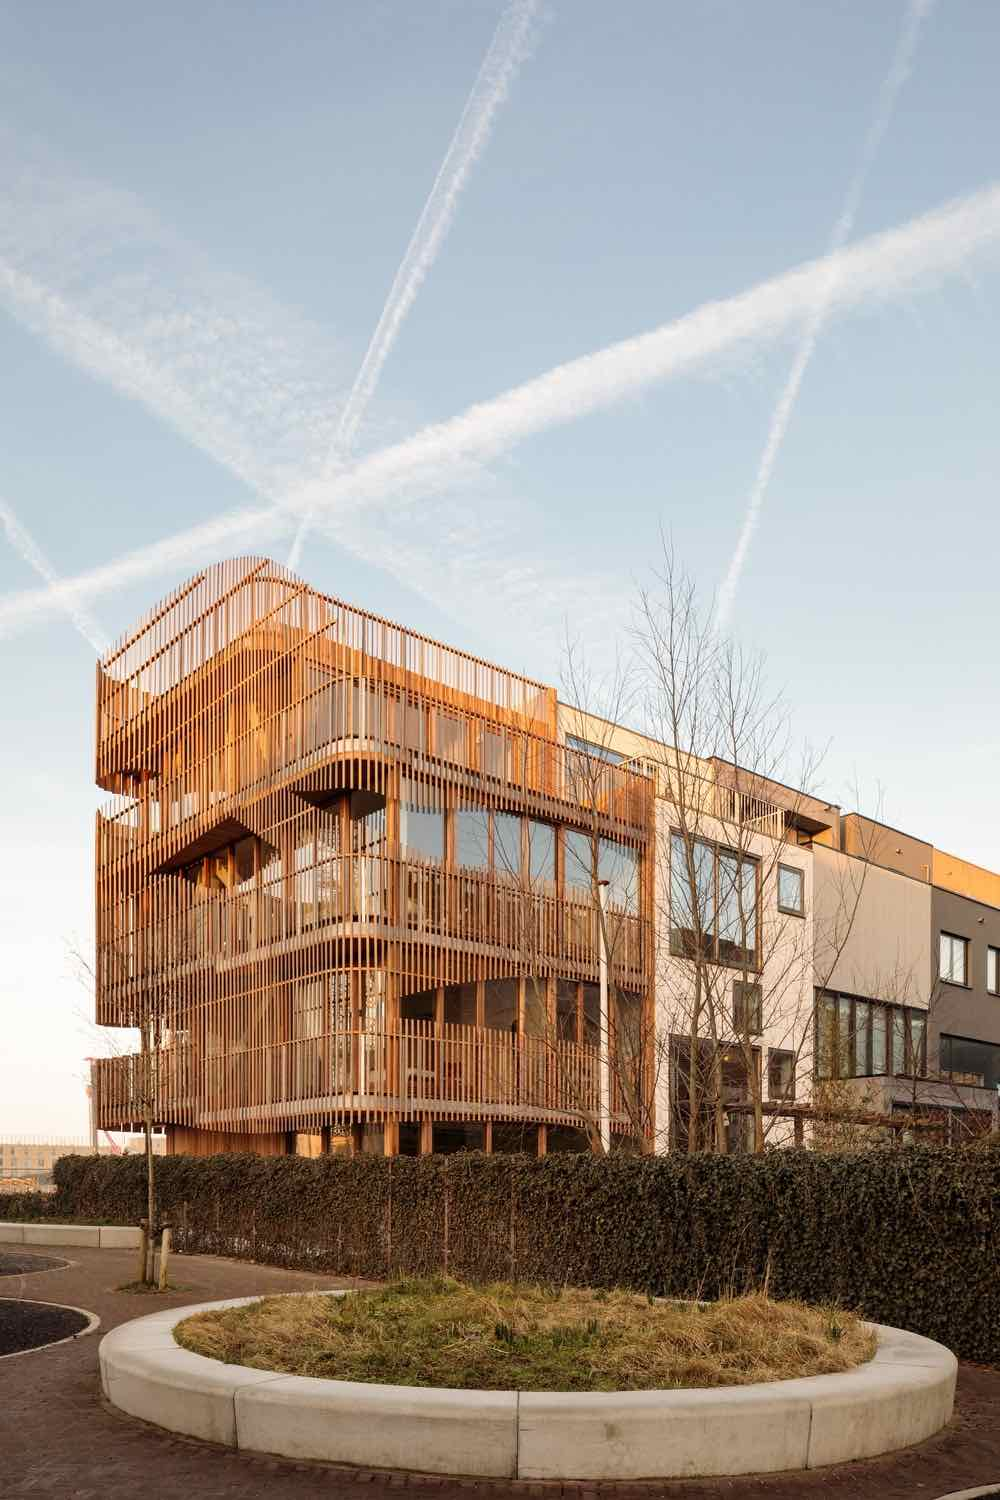 Freebooter building by GG-Loop in Amsterdam - Photo by Francisco Nogueira.